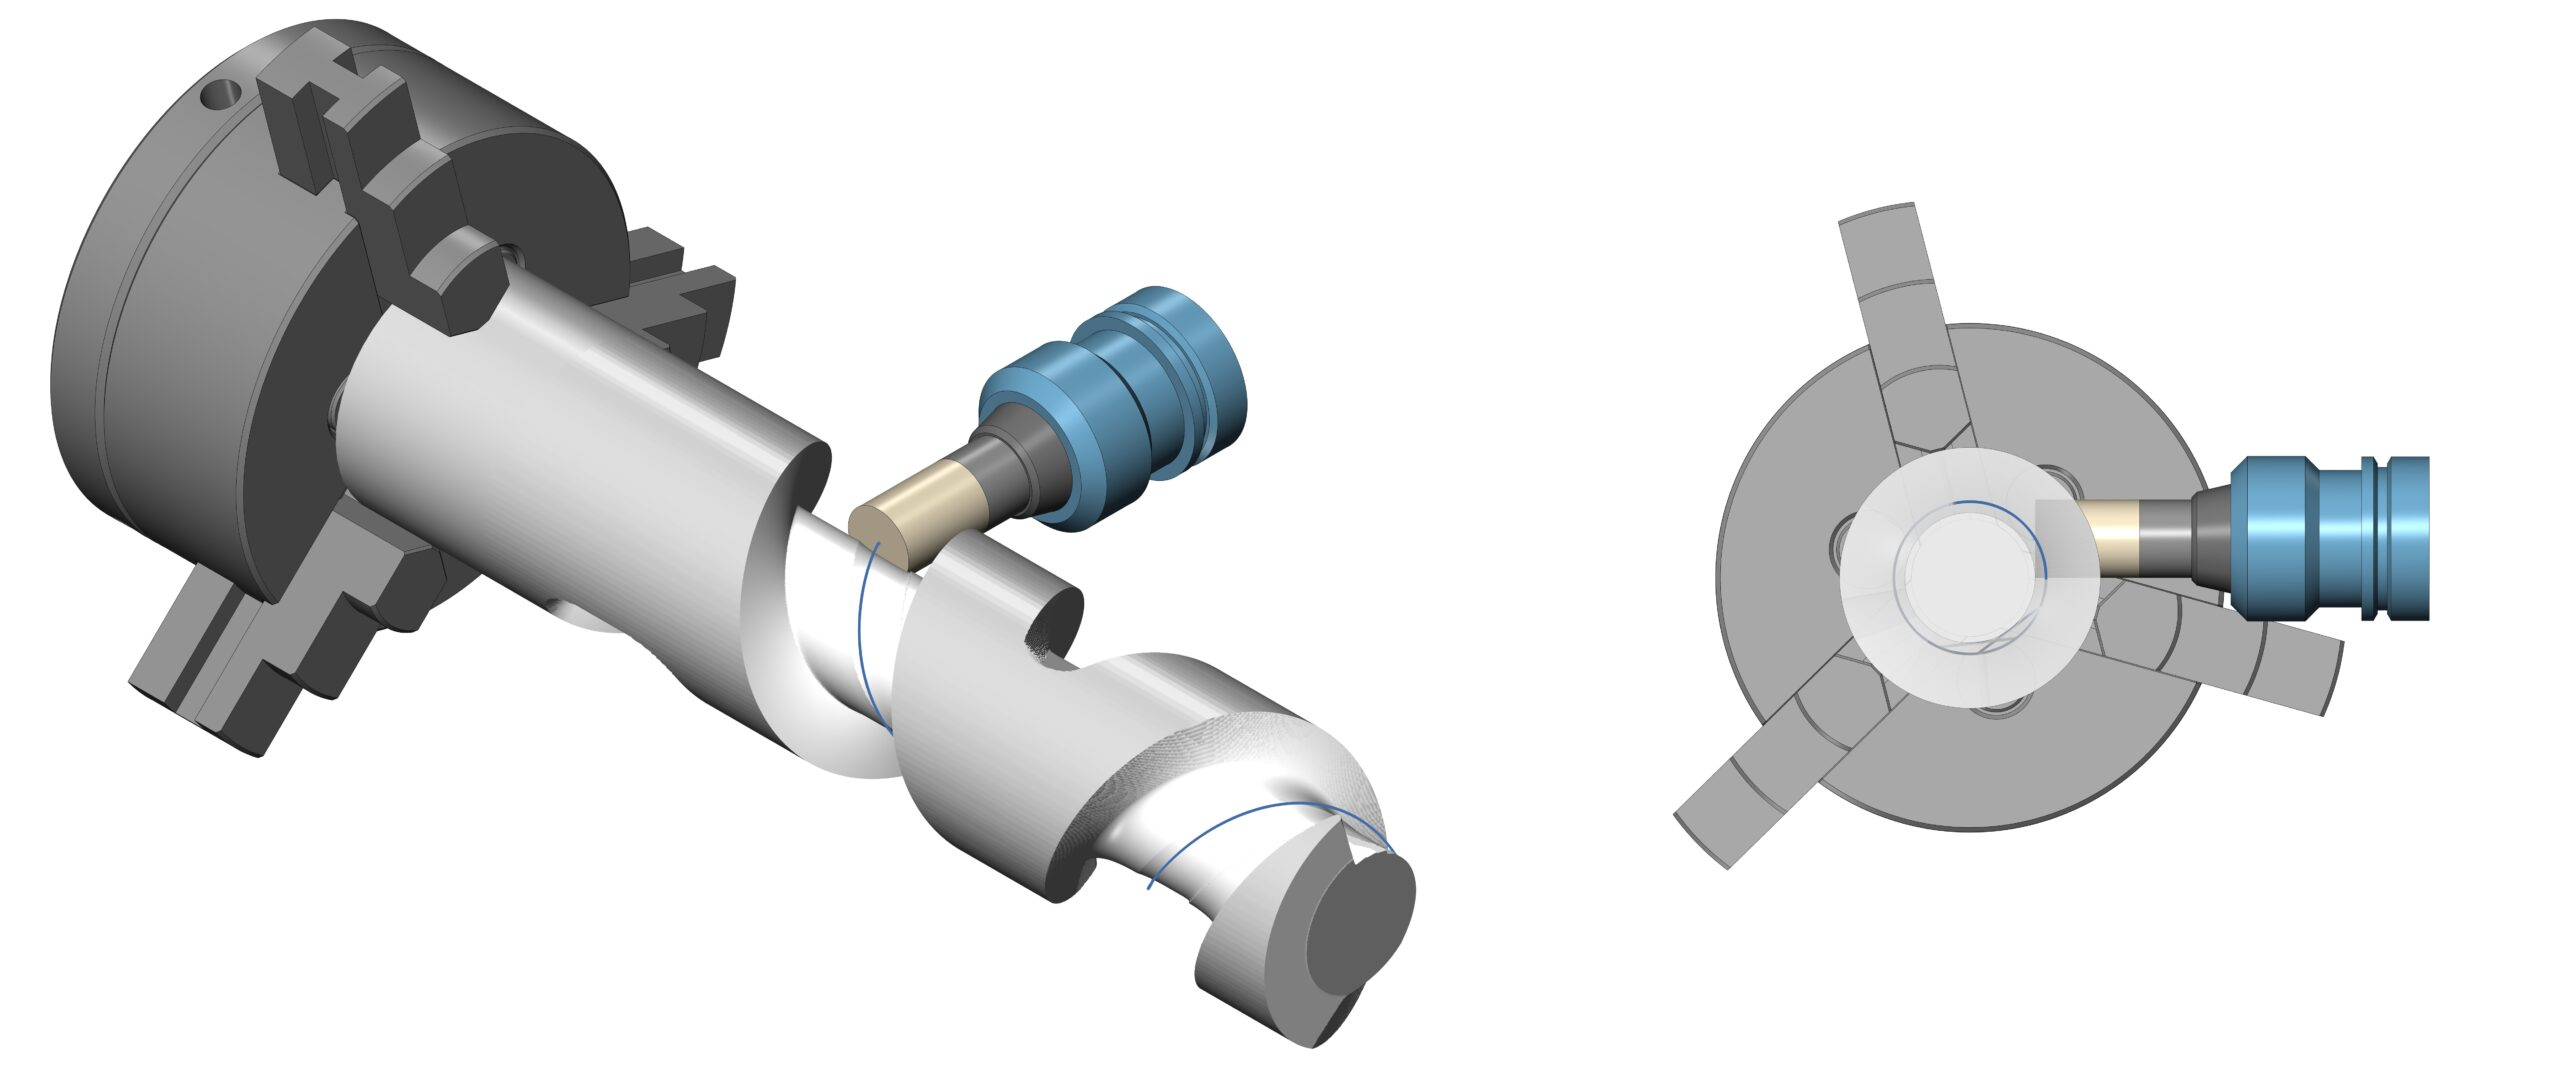 axis offset for roughing cycles